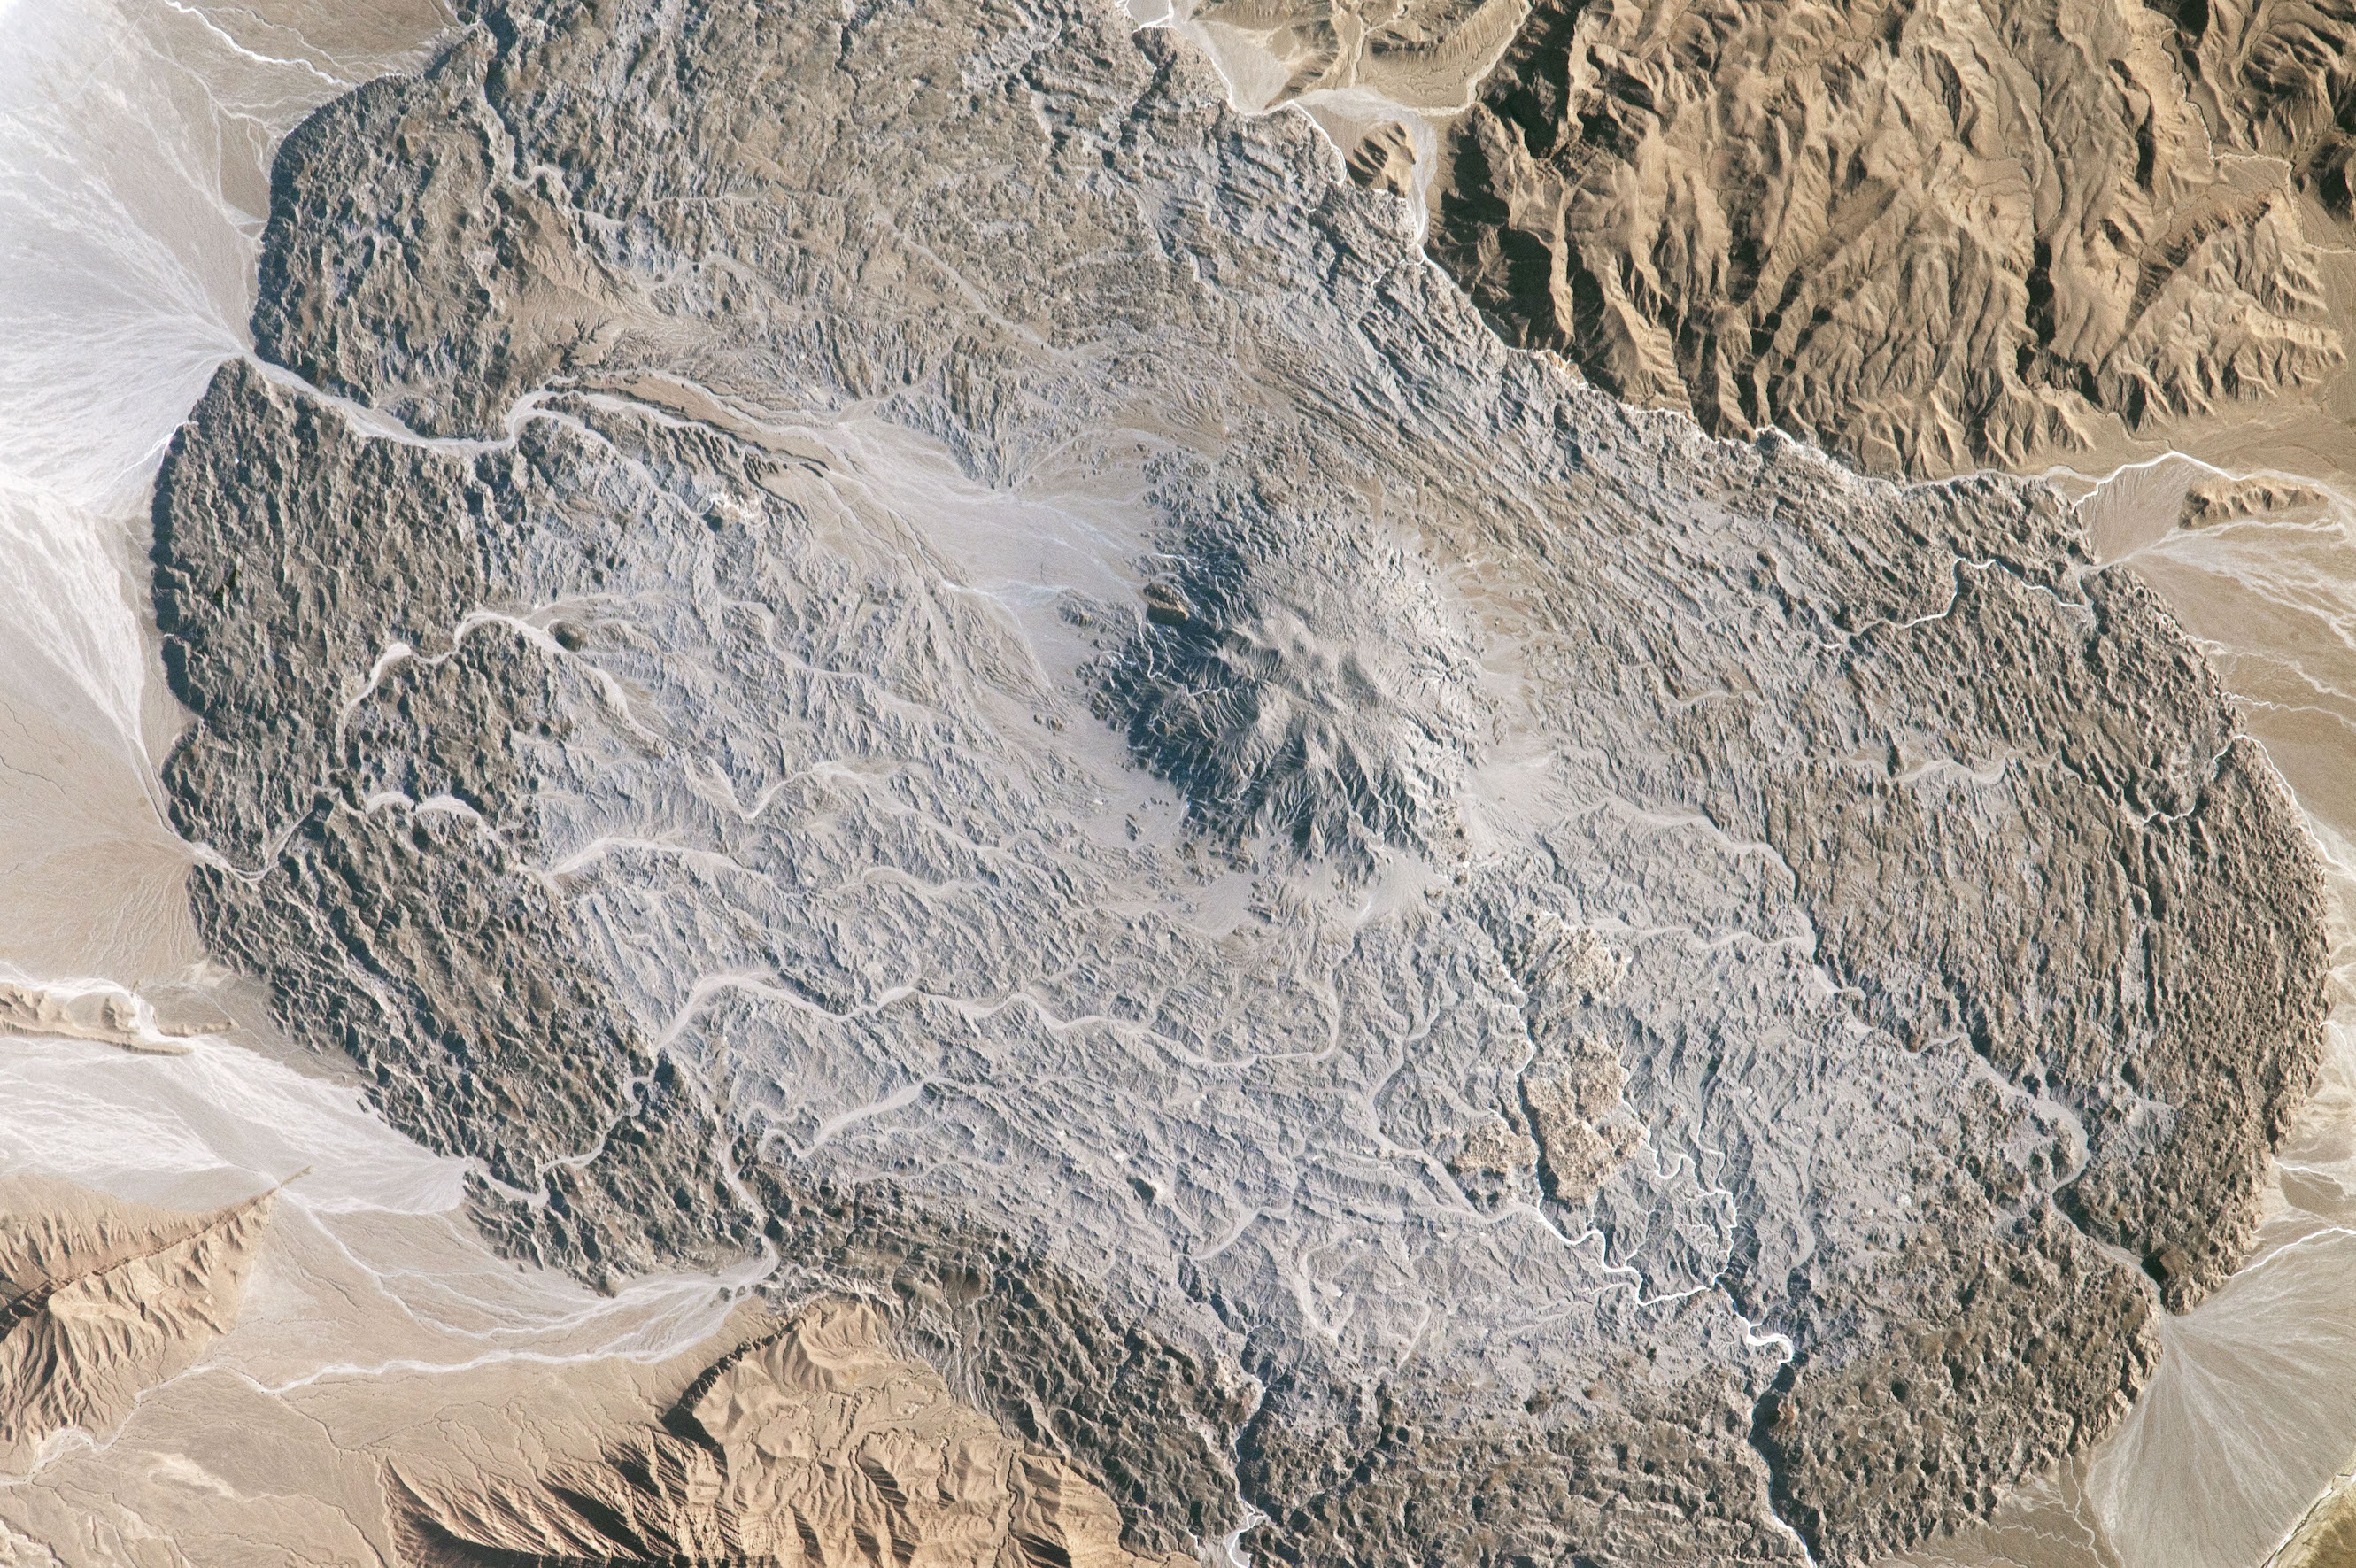 Today's Image of the Day comes courtesy of the NASA Earth Observatory and features a look at the Zagros Mountains in southeastern Iran.